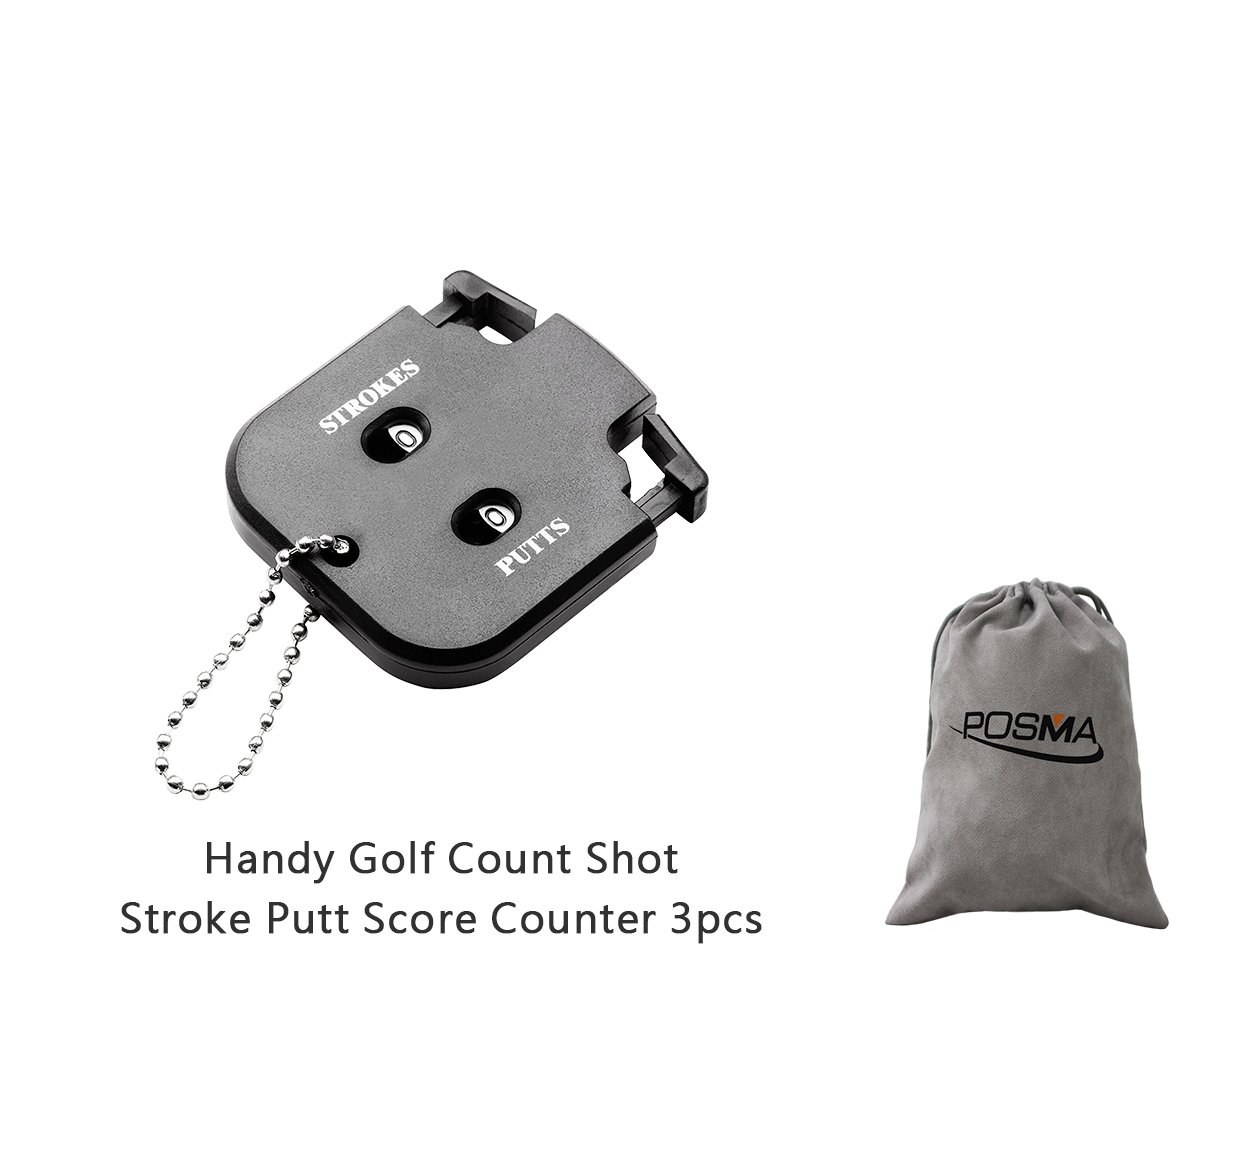 POSMA SC010 3pcs Handy Golf Count Shot Stroke Putt Score Counter Two Digits Scoring Keeper Mini Come with Flannel storage bag